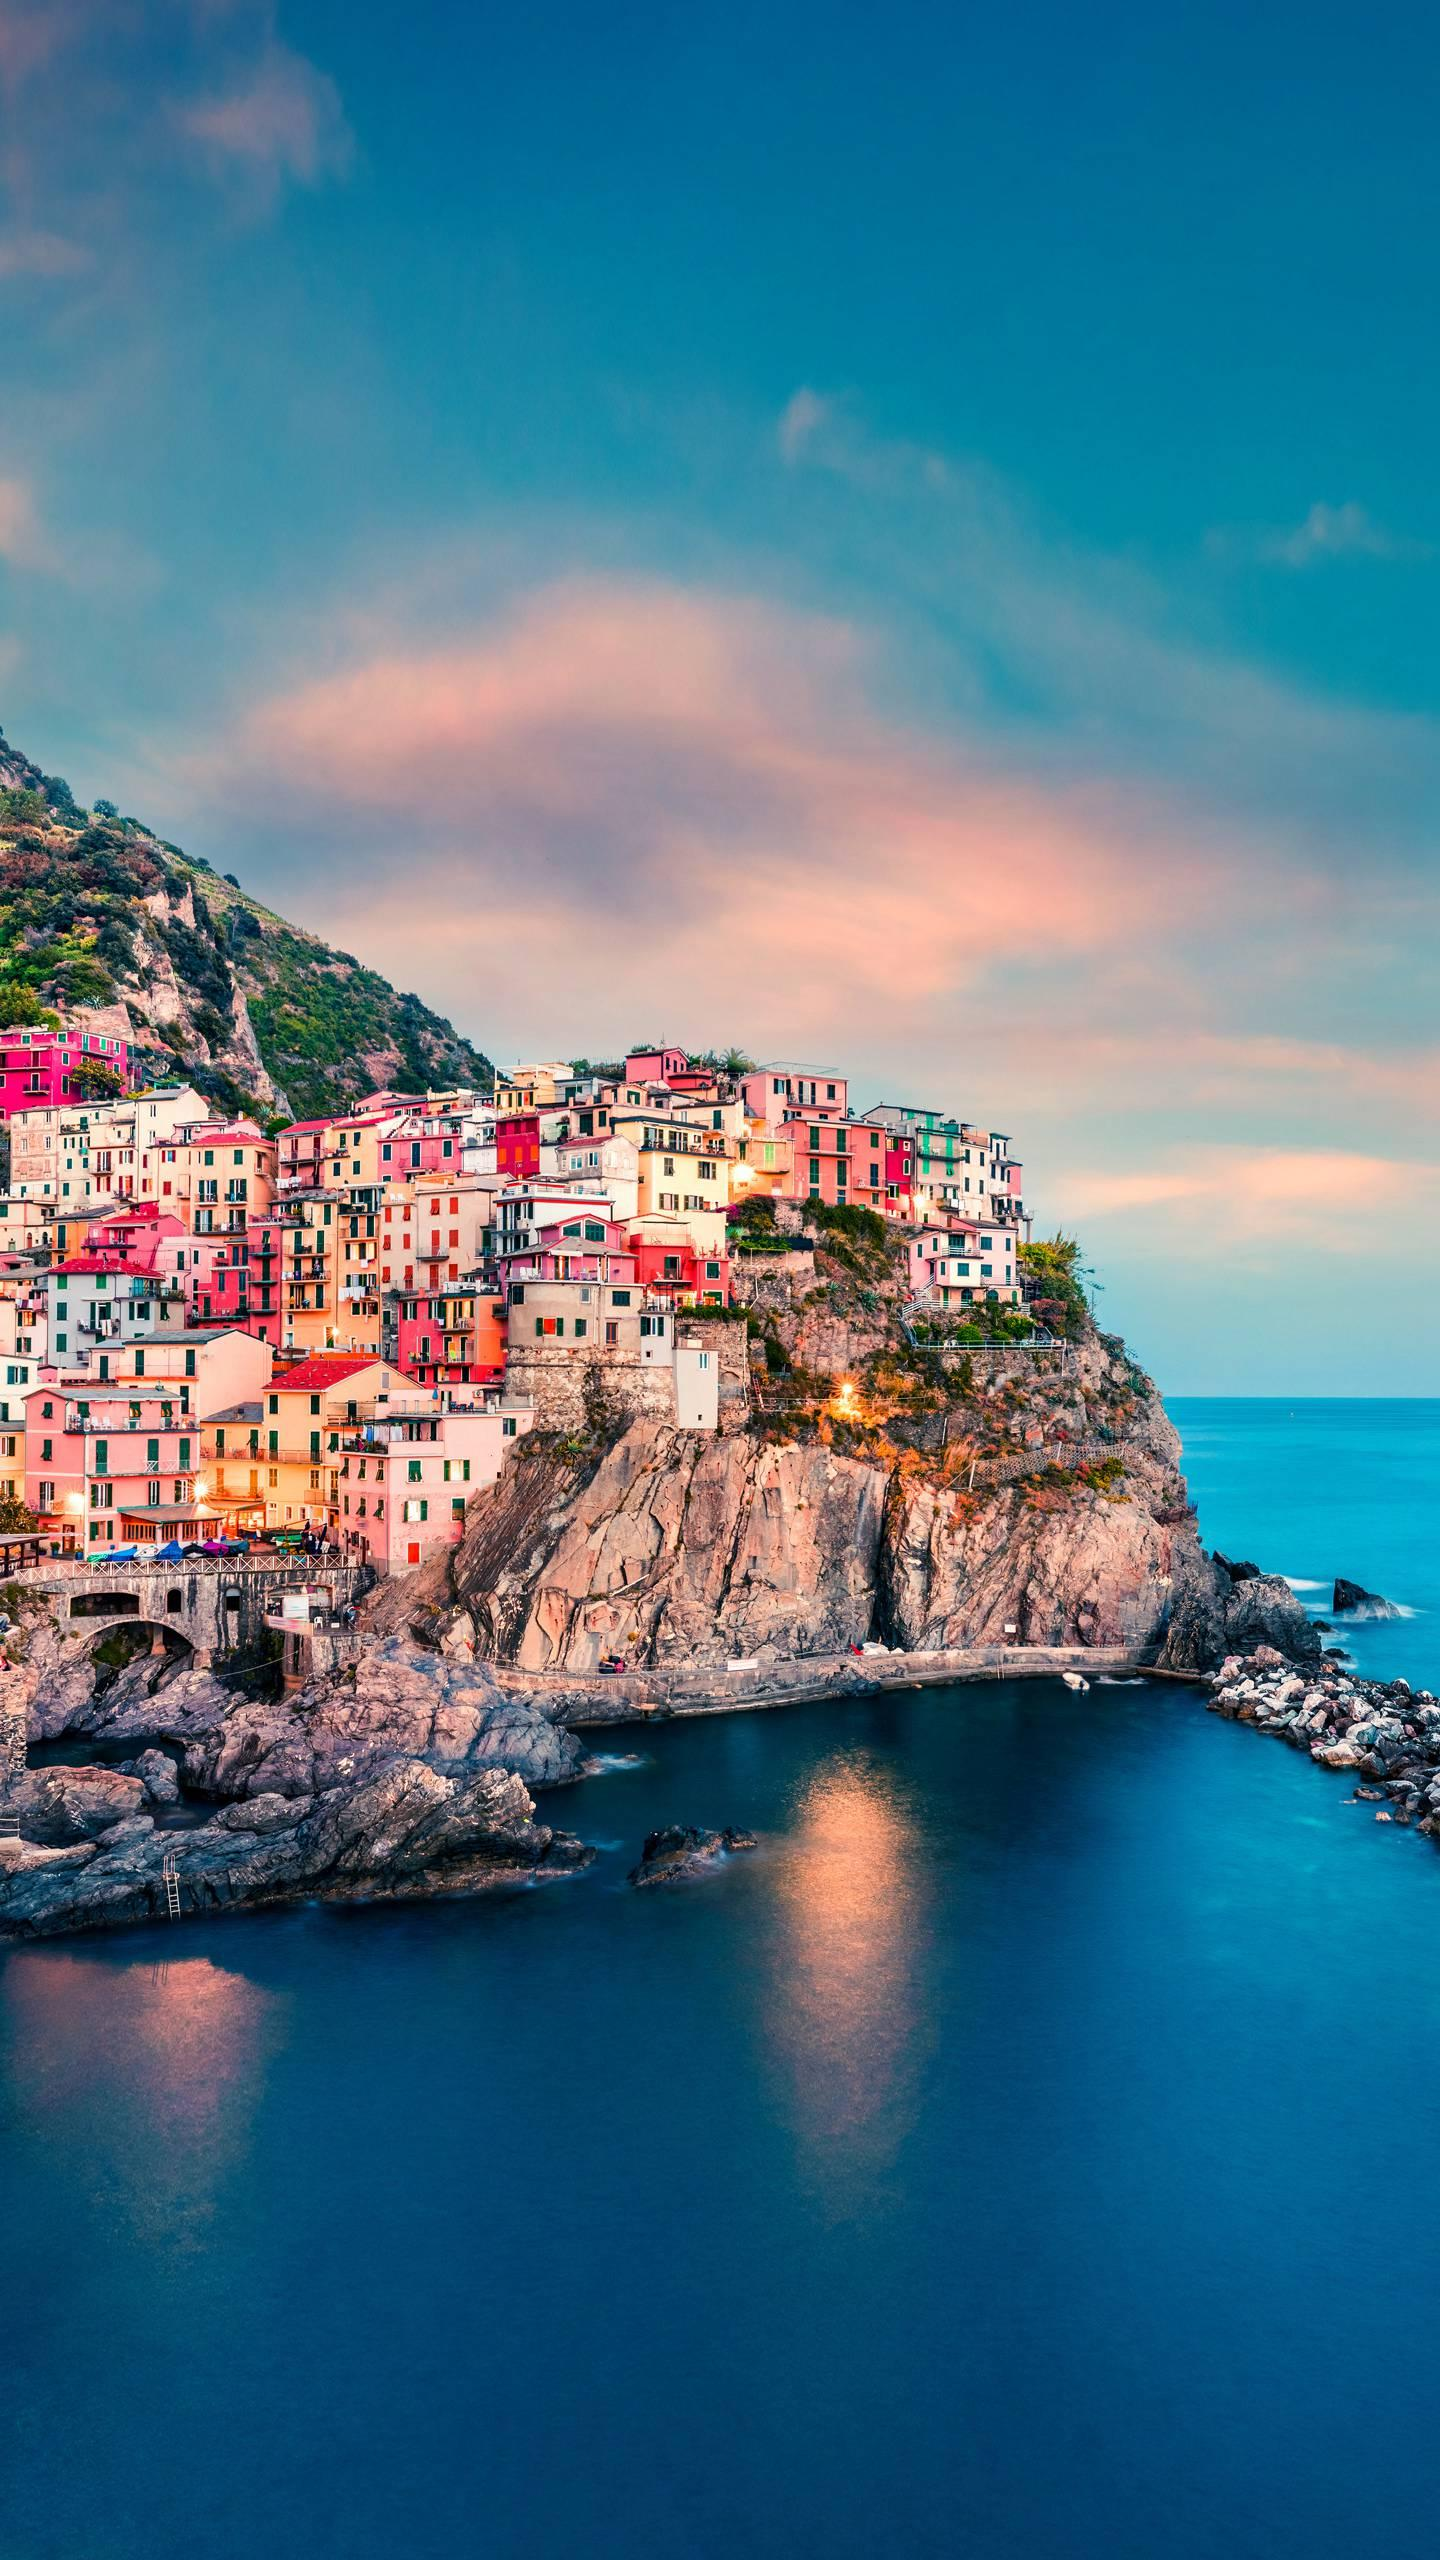 Italy - the Cinque Terre. The colorful houses are situated on the cliffs, like colored gems dotted between the green hills and the sea.